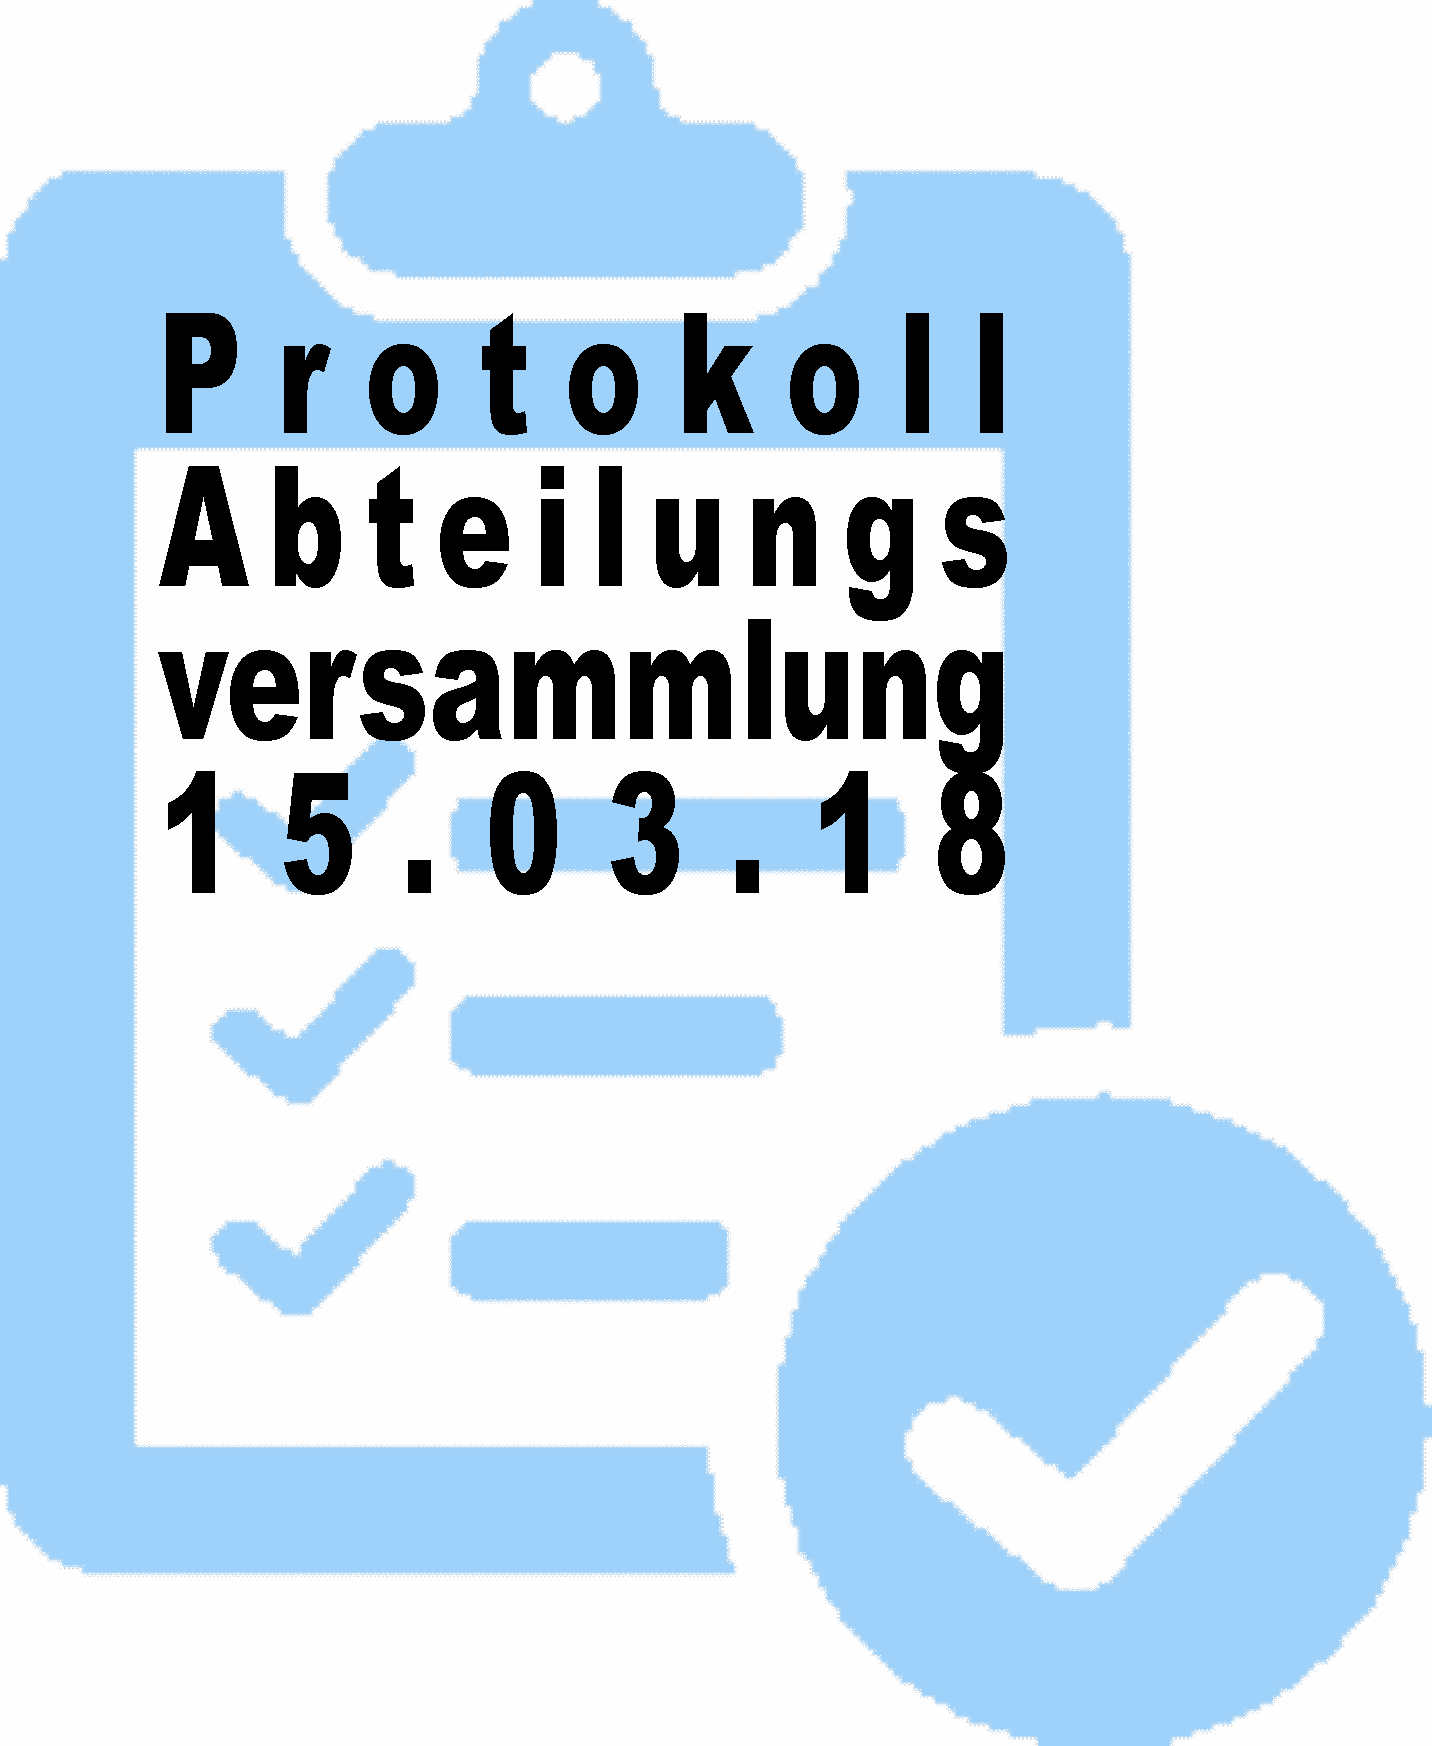 Protokoll Vorstand Button